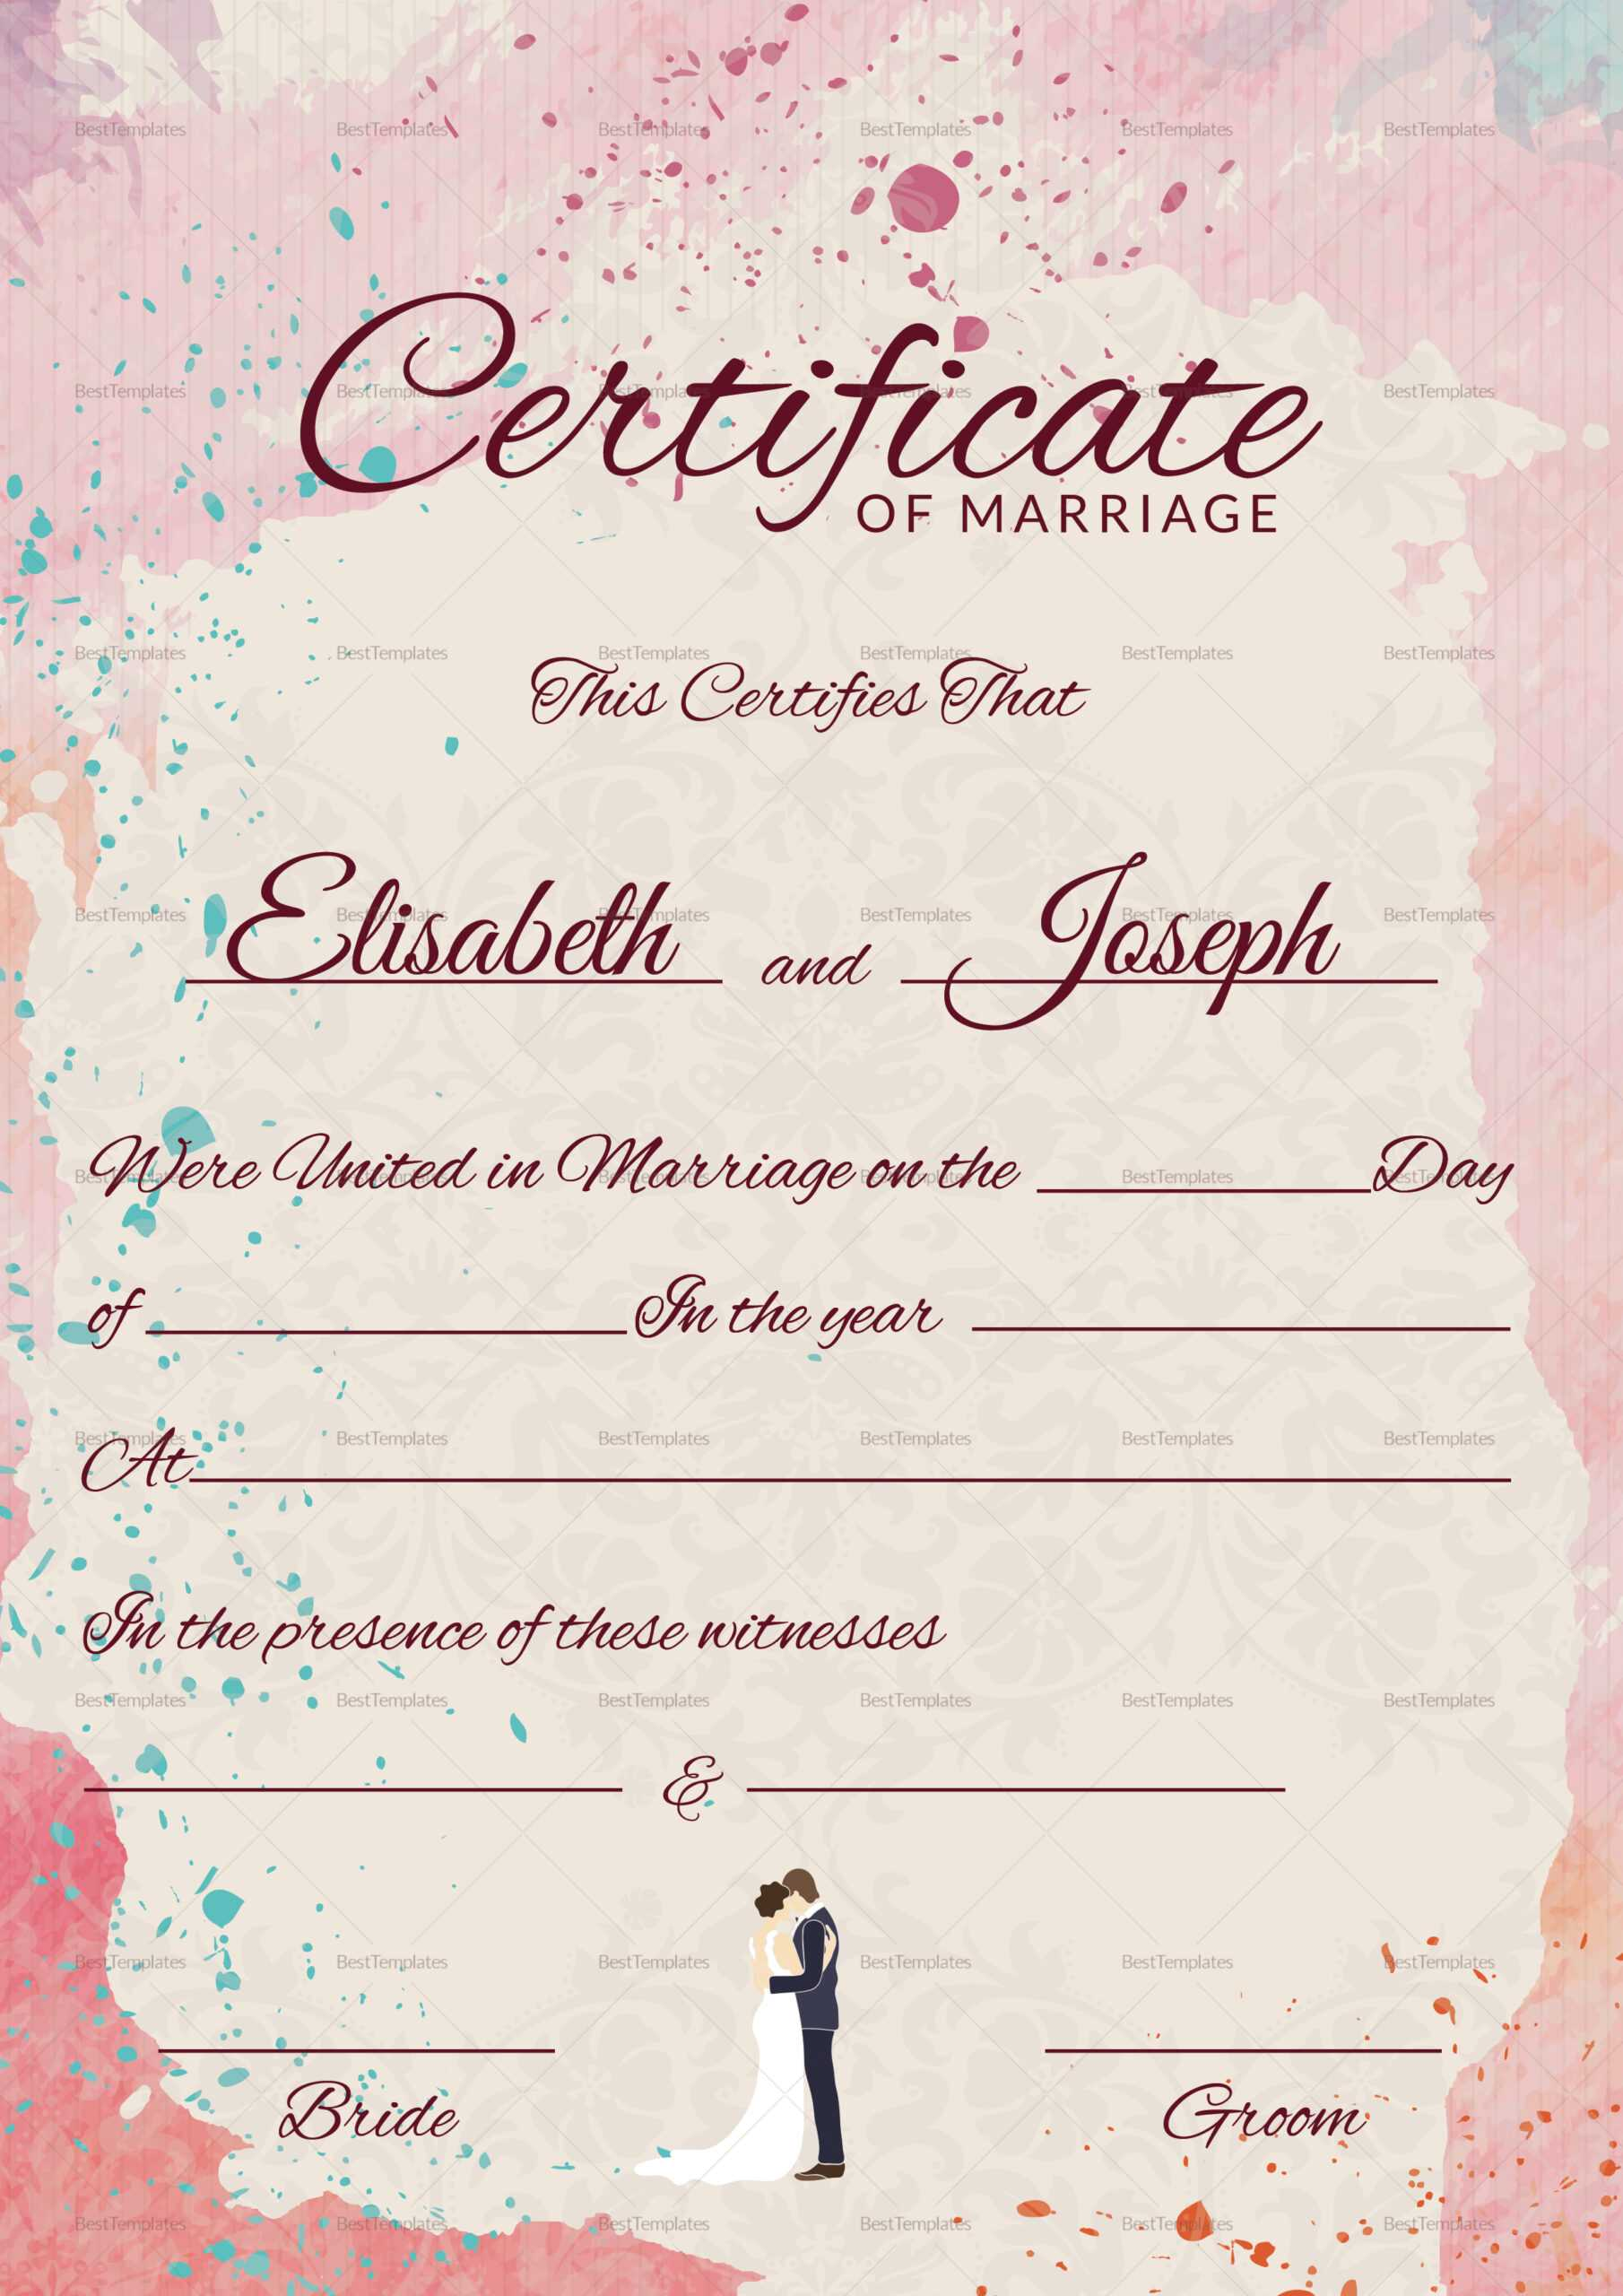 Christian Marriage Certificate Template Regarding Certificate Of Marriage Template